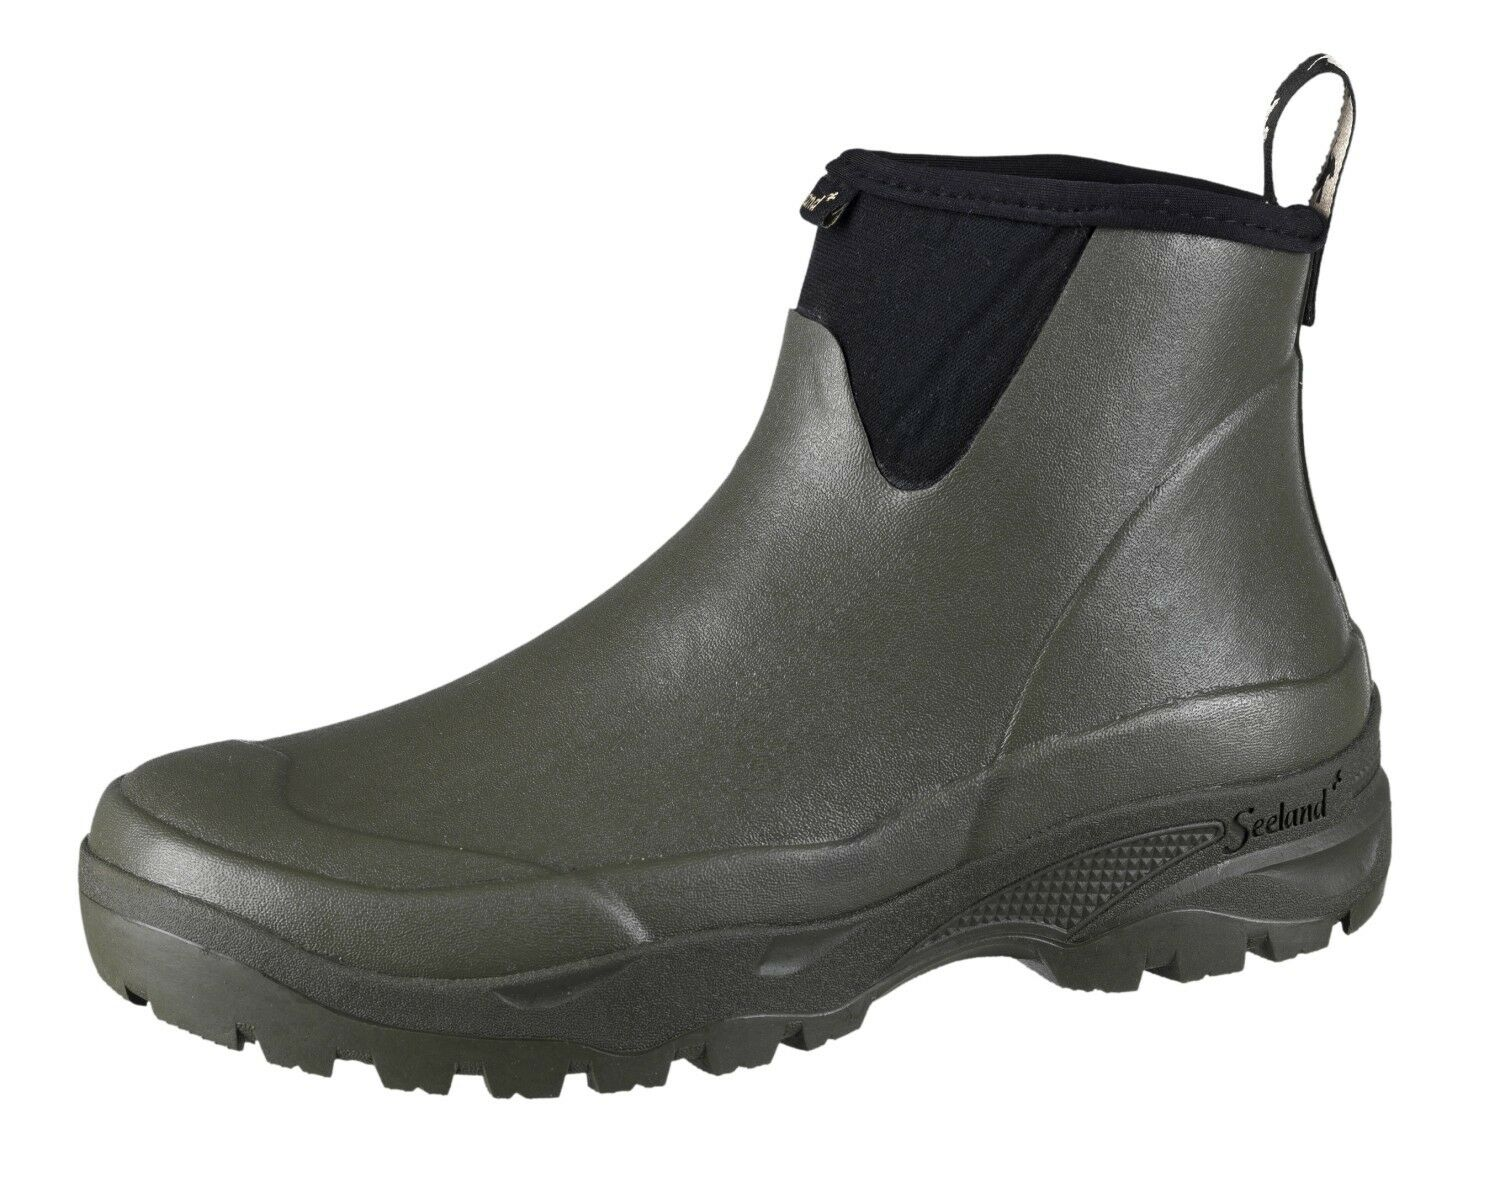 Seeland Rubber shoes Rainy Men - Dark Green - 4 mm Neoprene